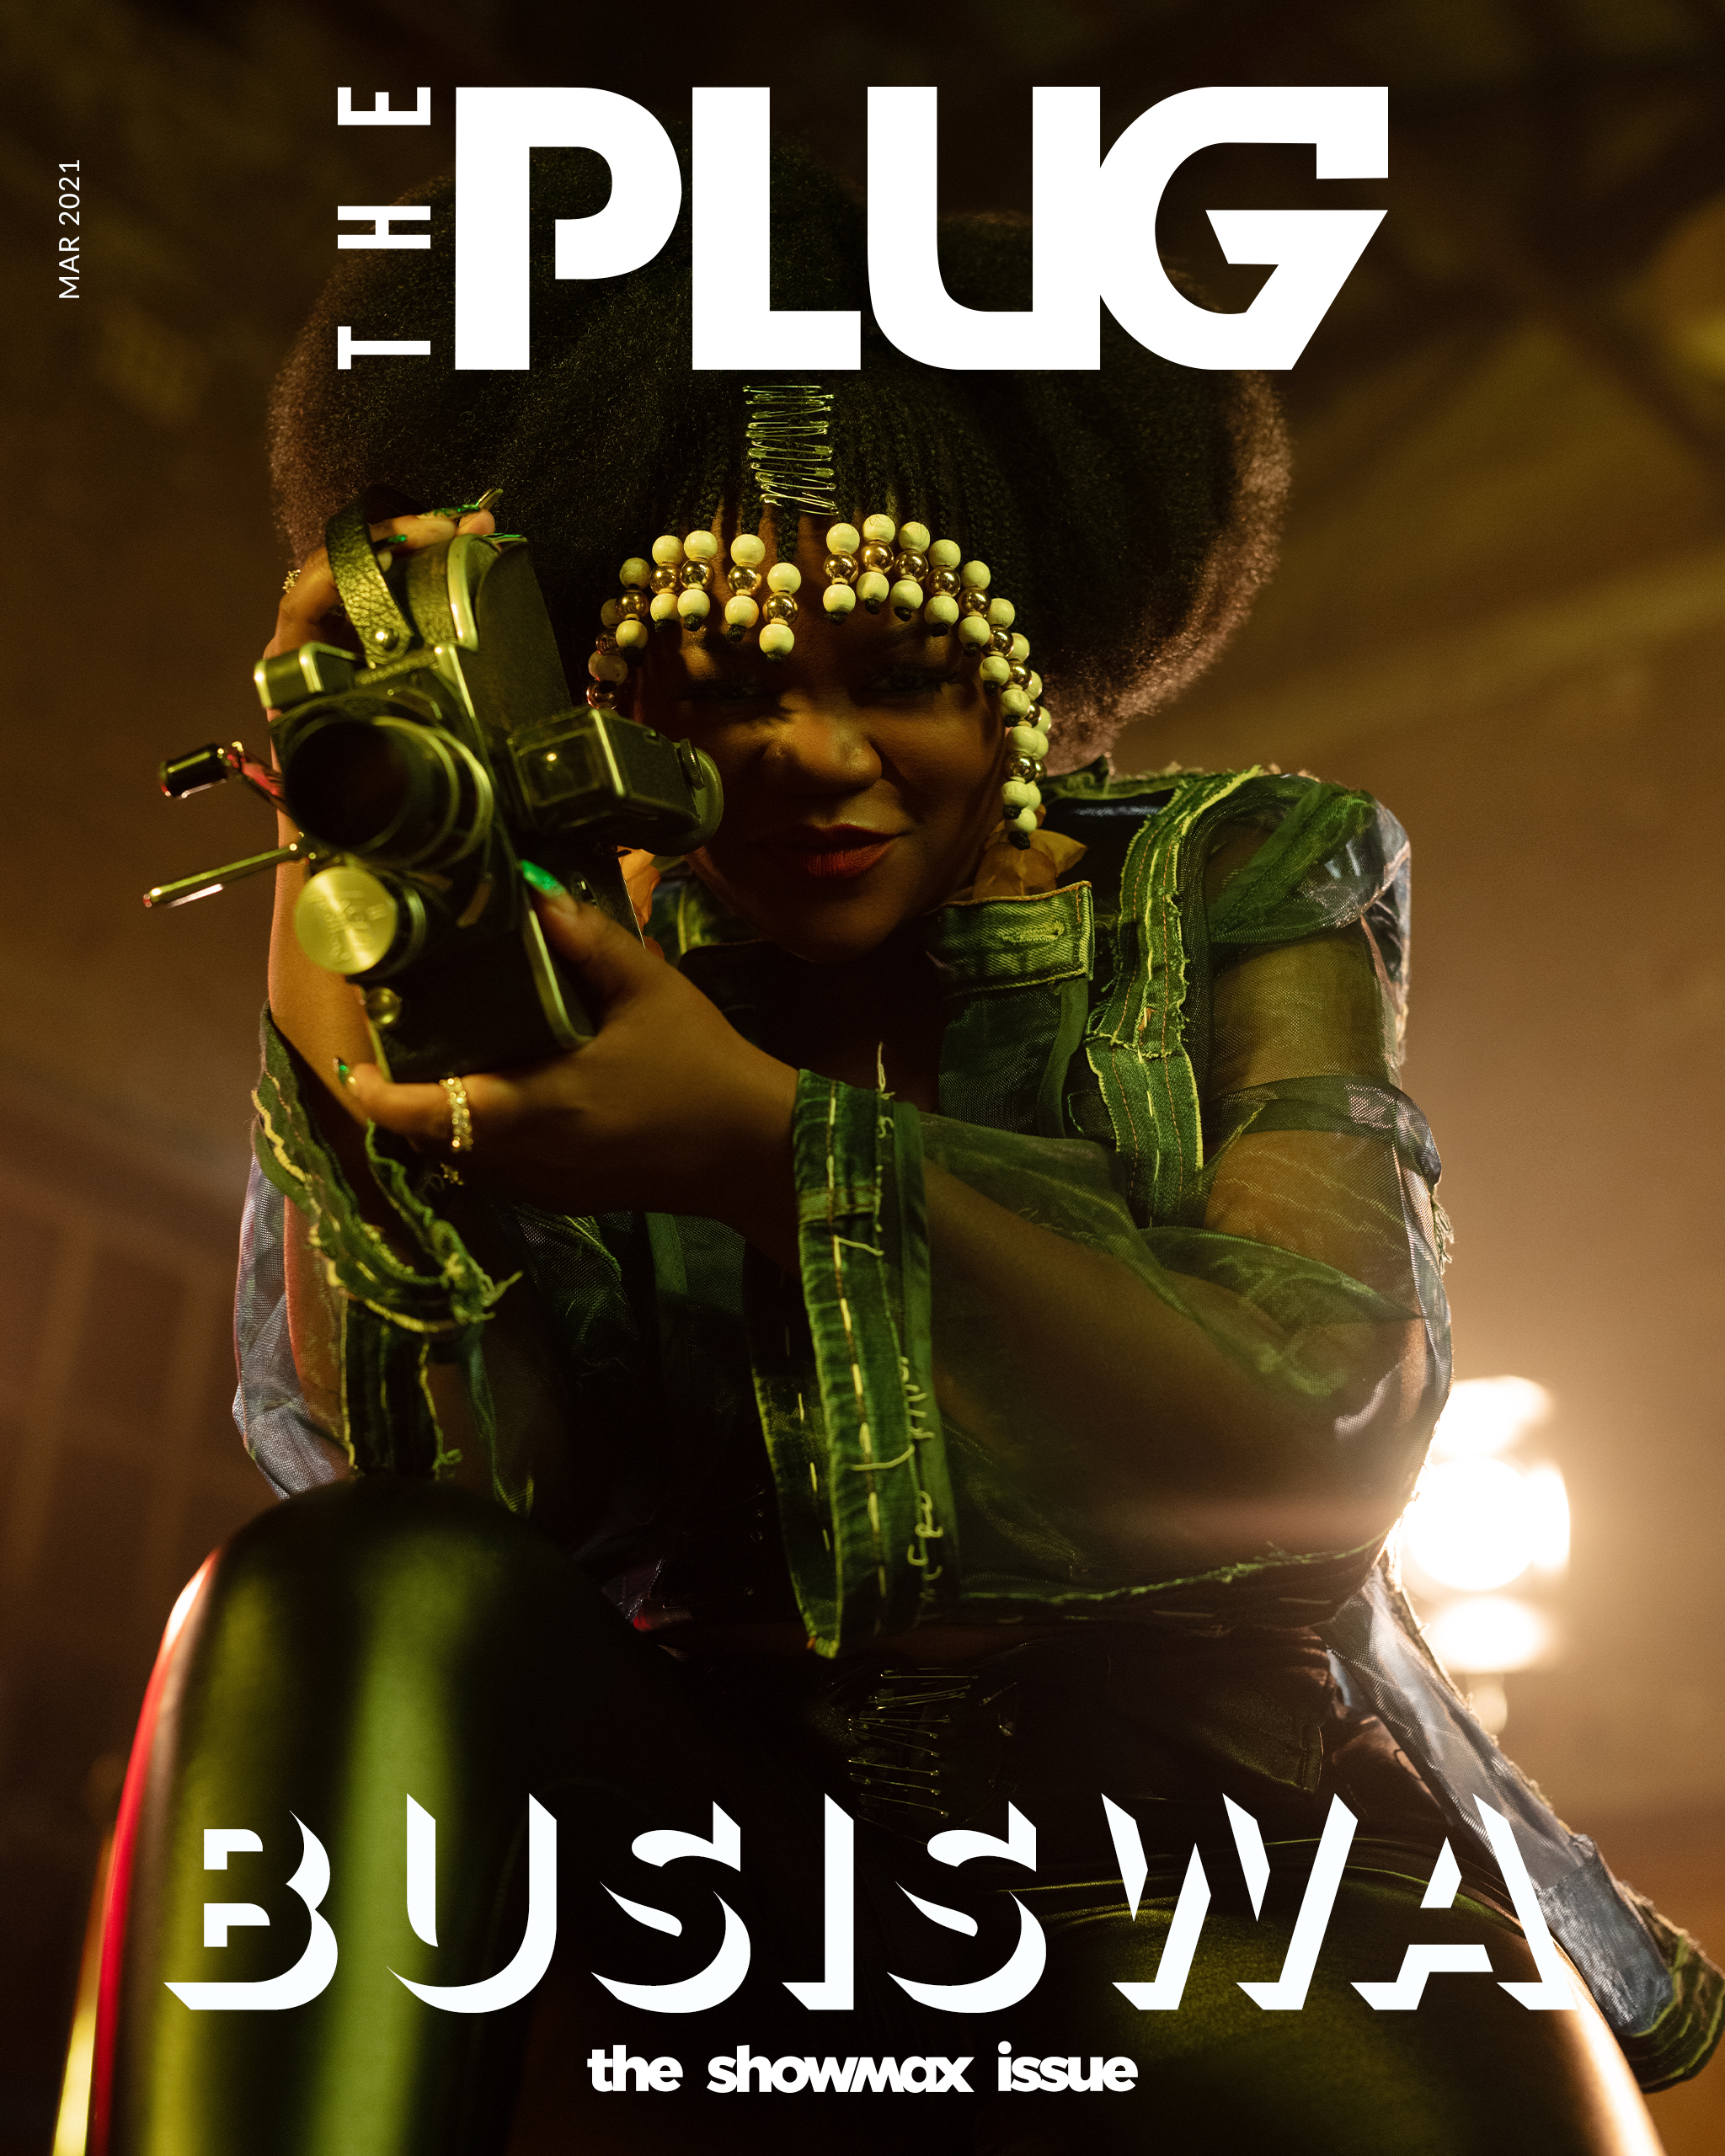 The Plug Busiswa Showmax cover